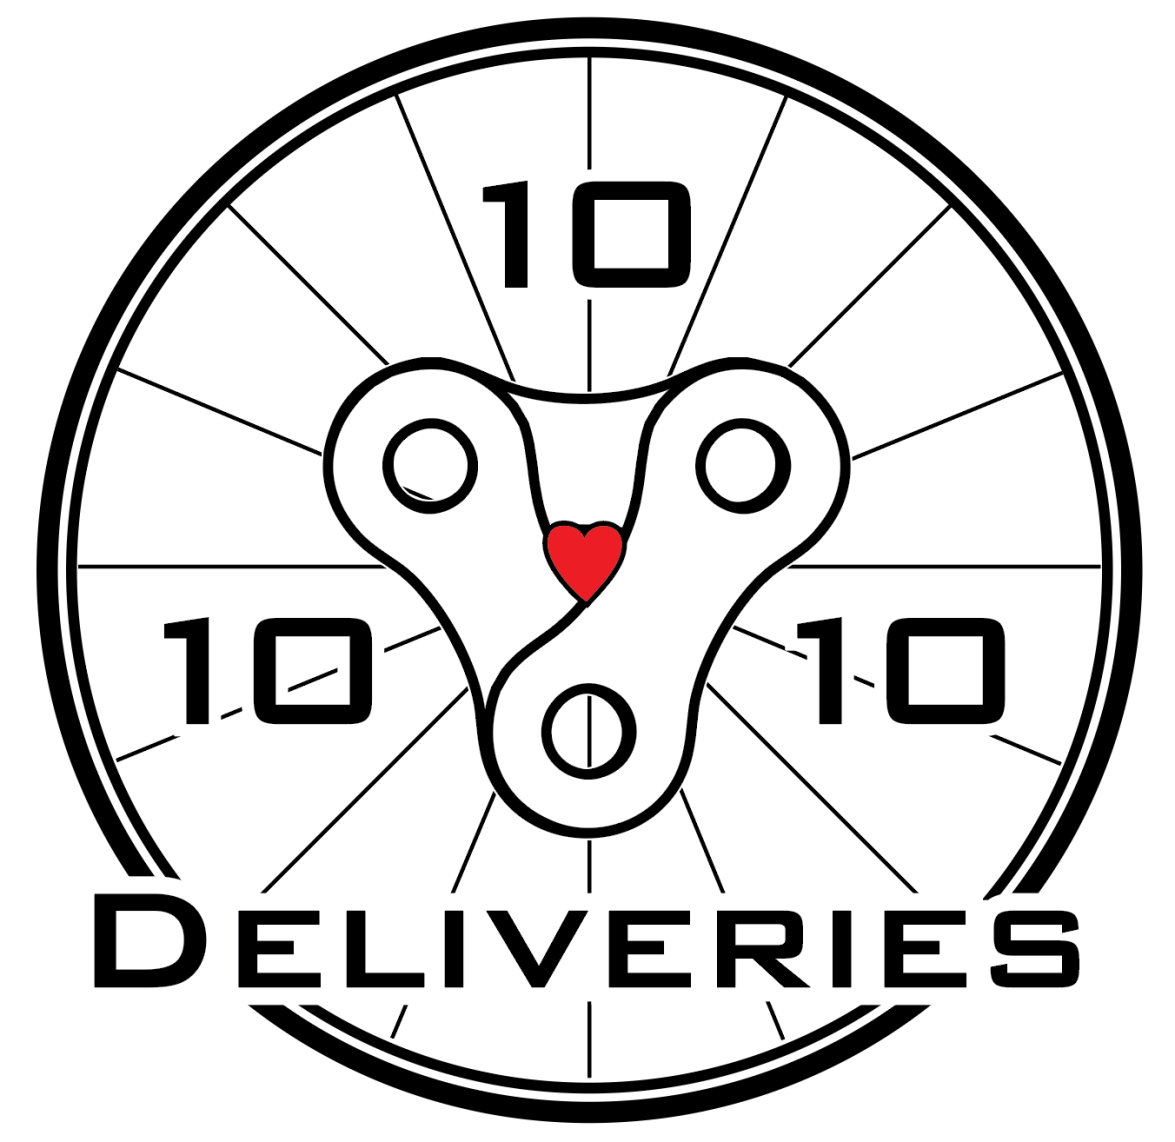 Logo-10-10-10-Deliveries